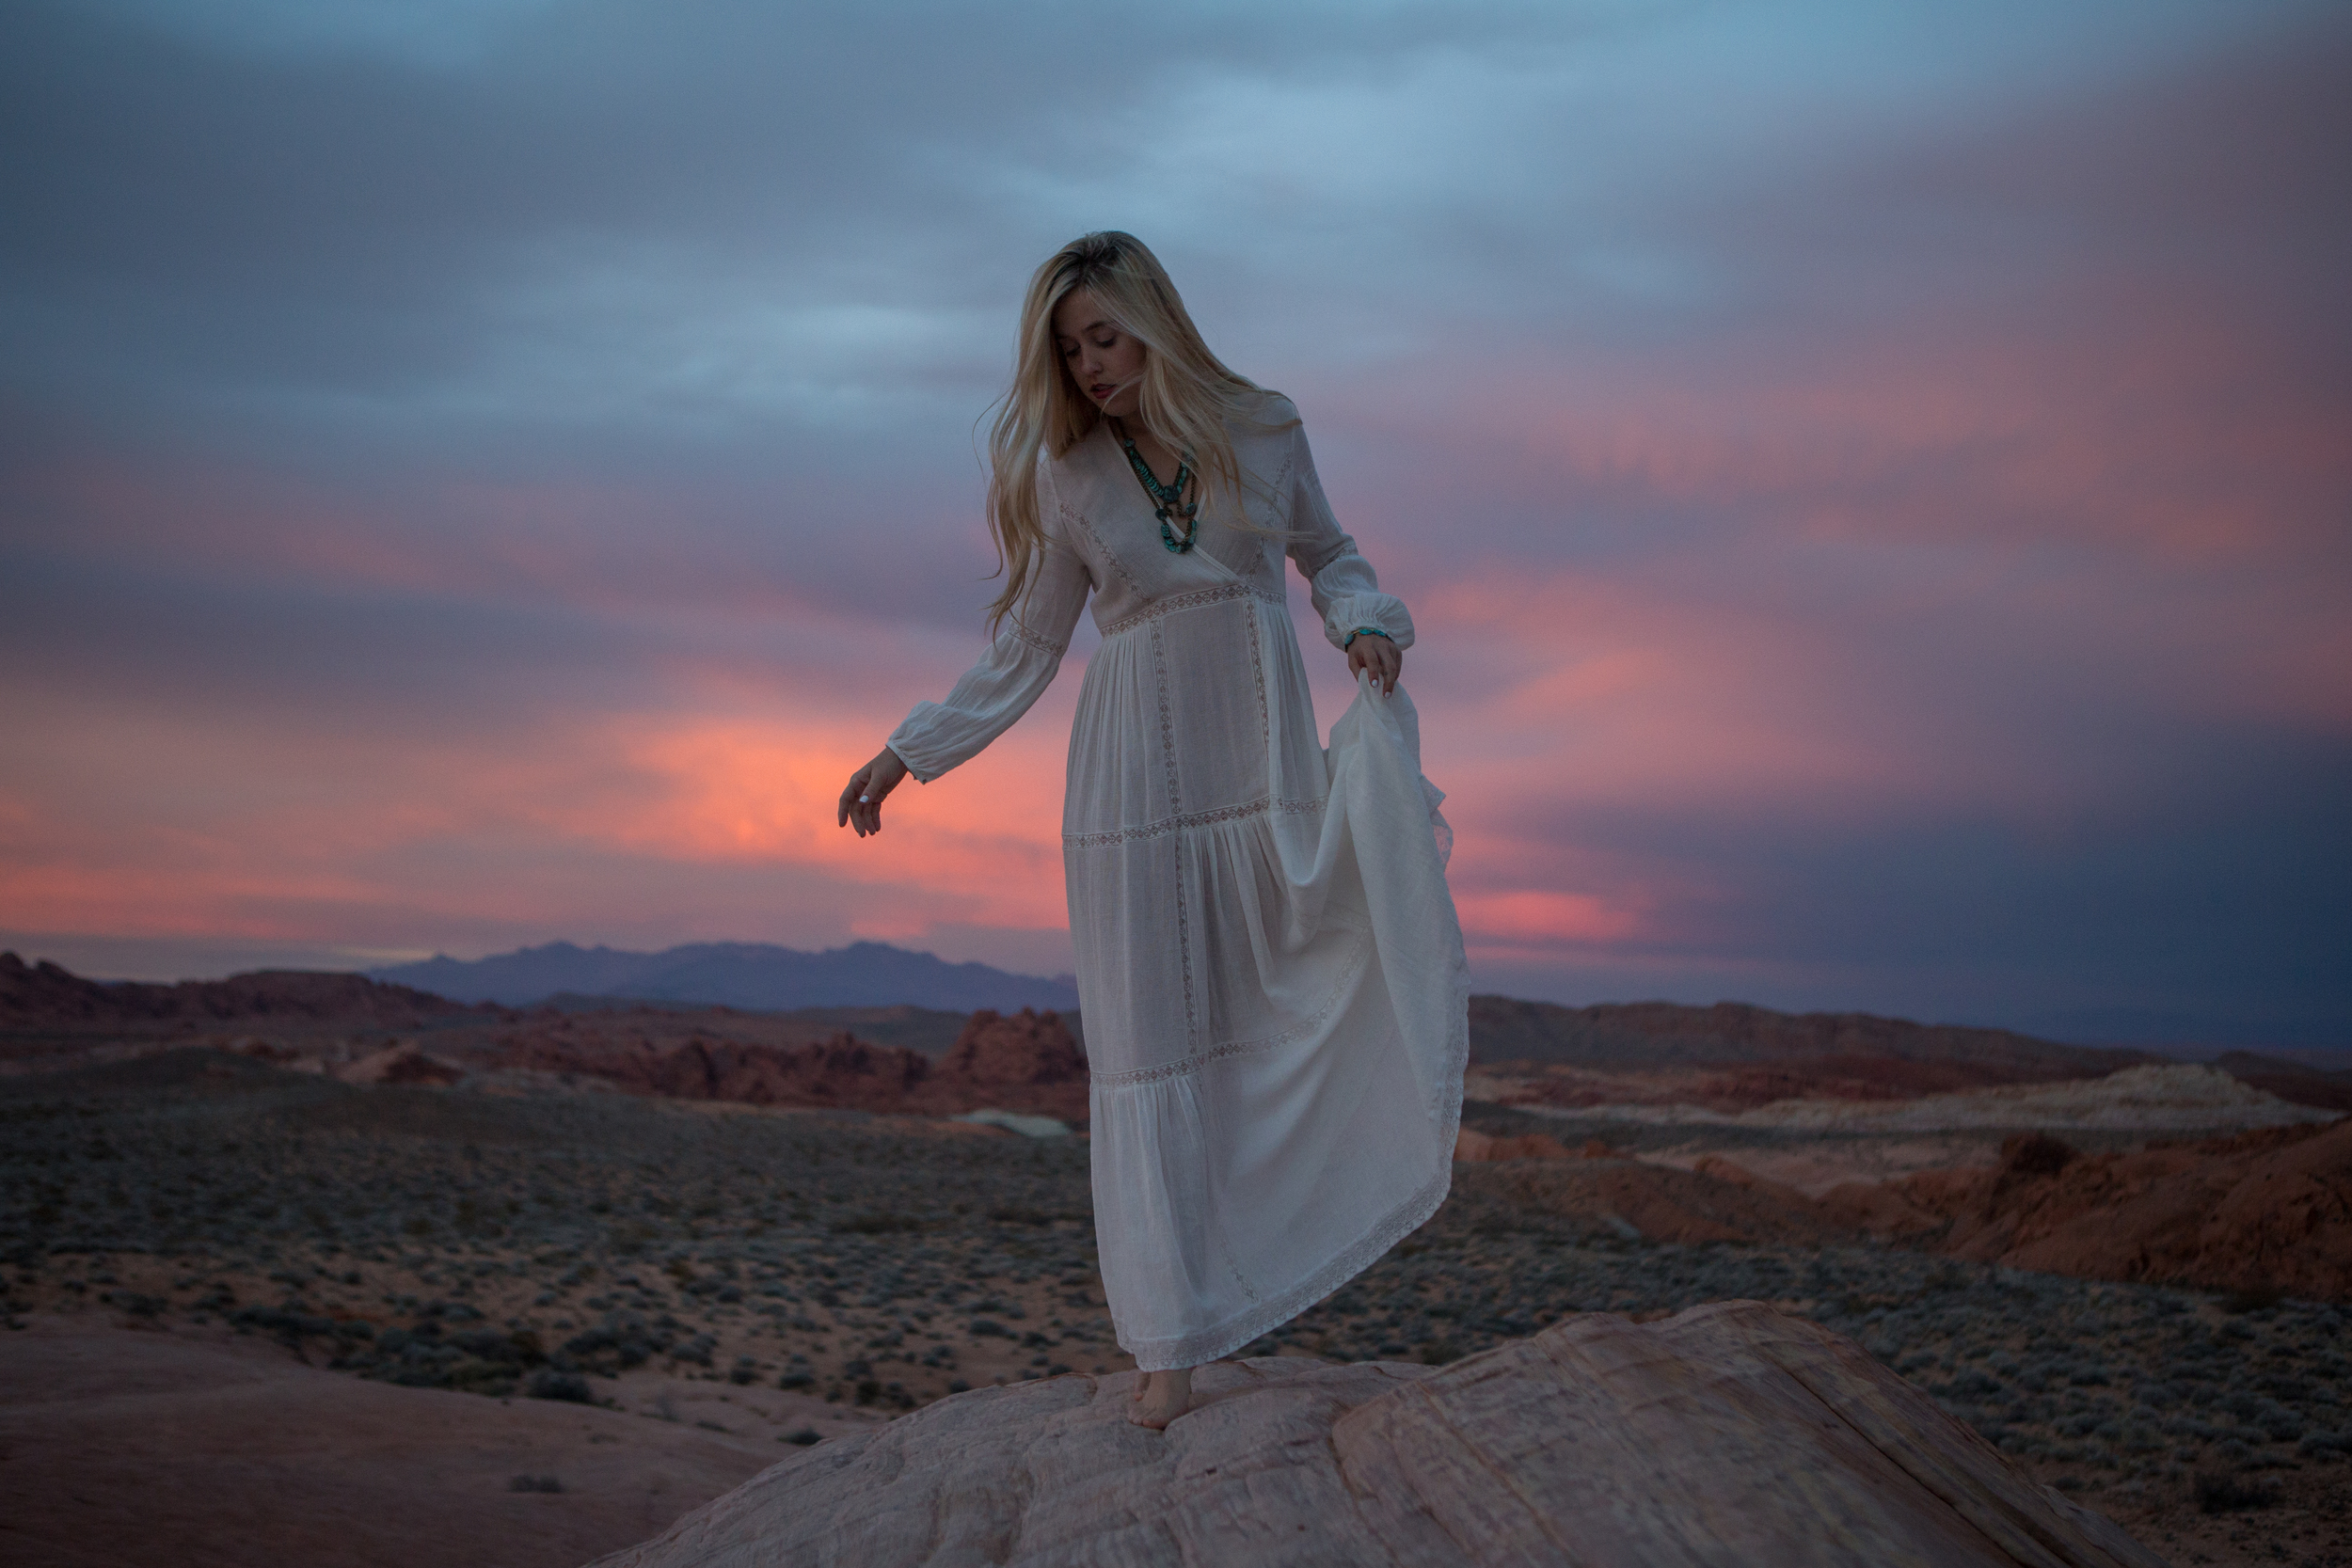 AstroBandit_ValleyOfFire_Sunset_WhiteDress_Dancing_Fashon_8.jpg